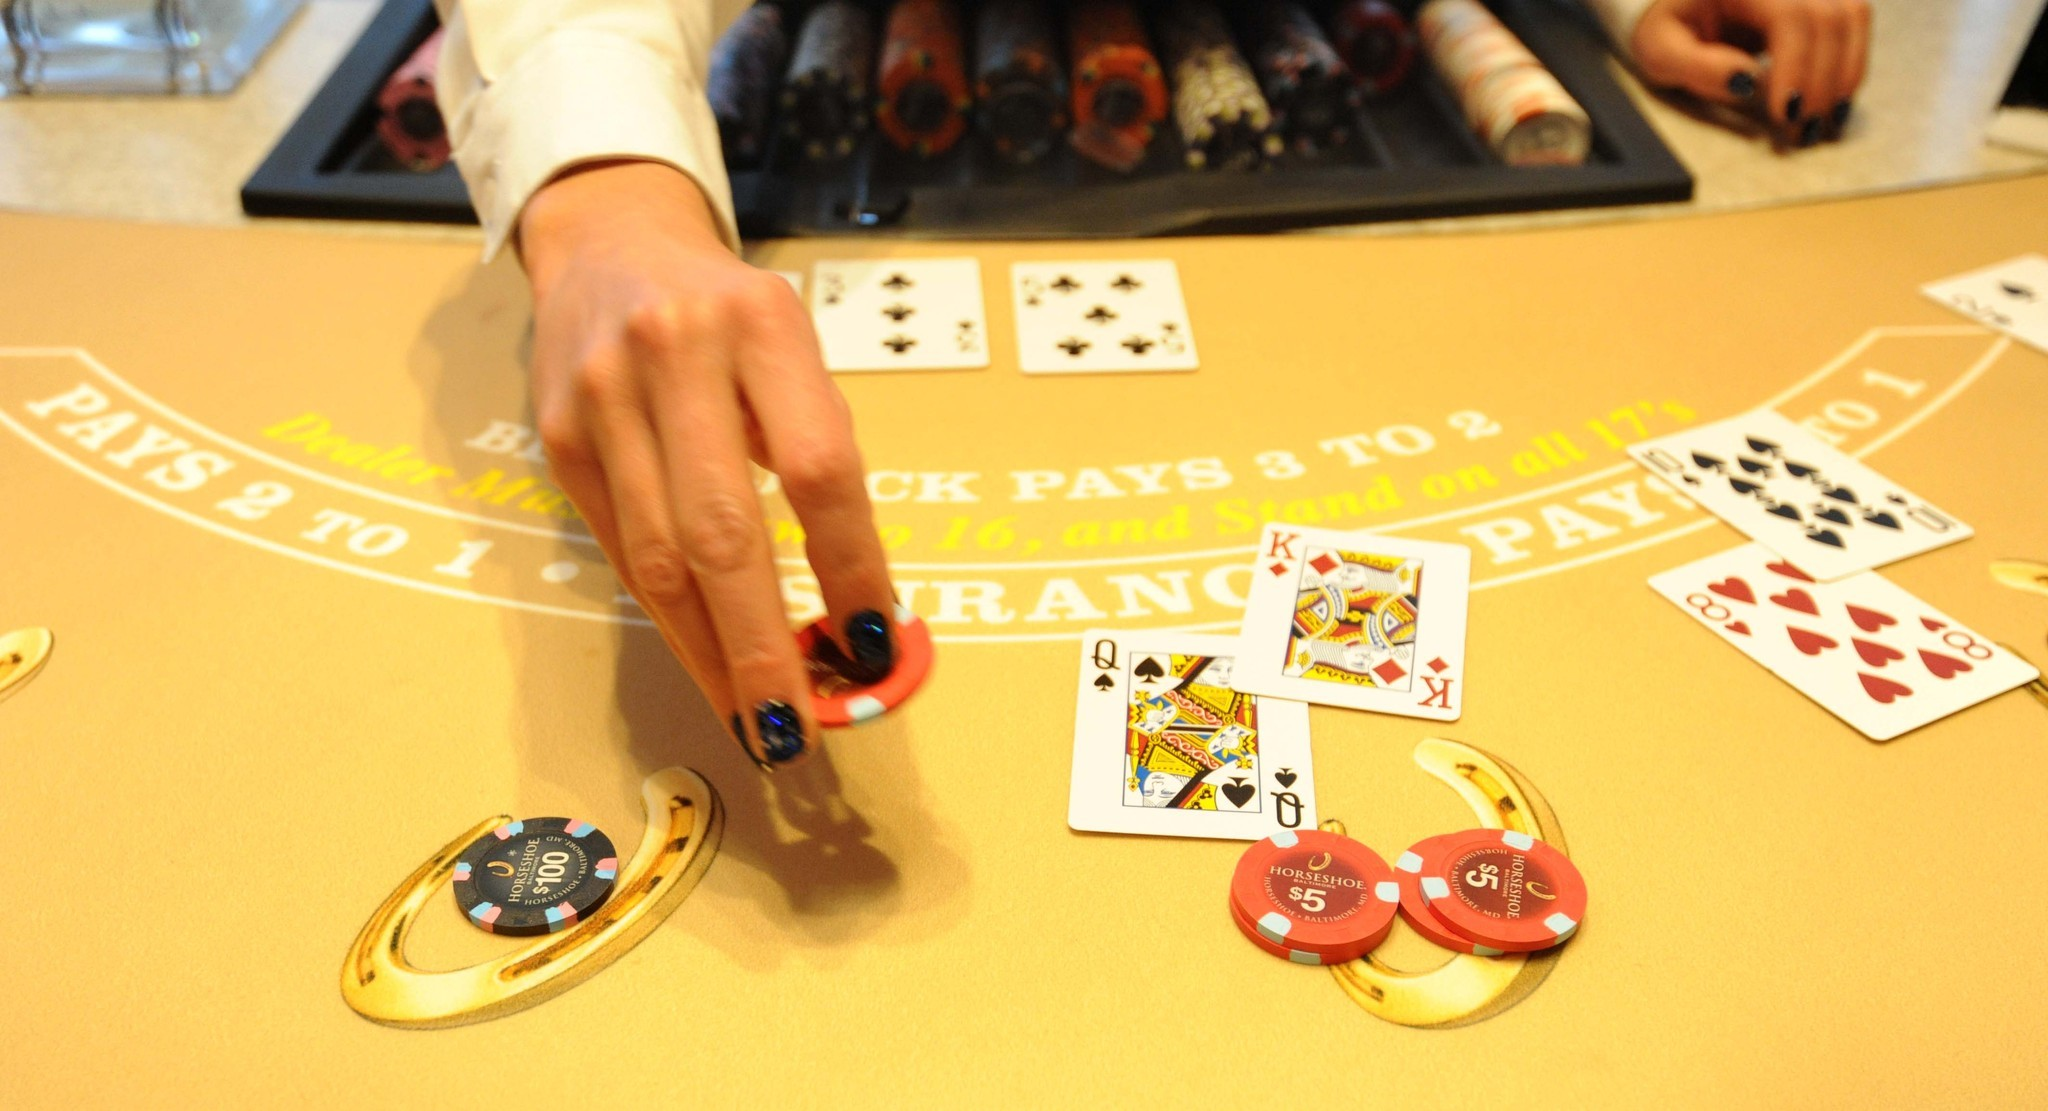 Texas holdem promotions